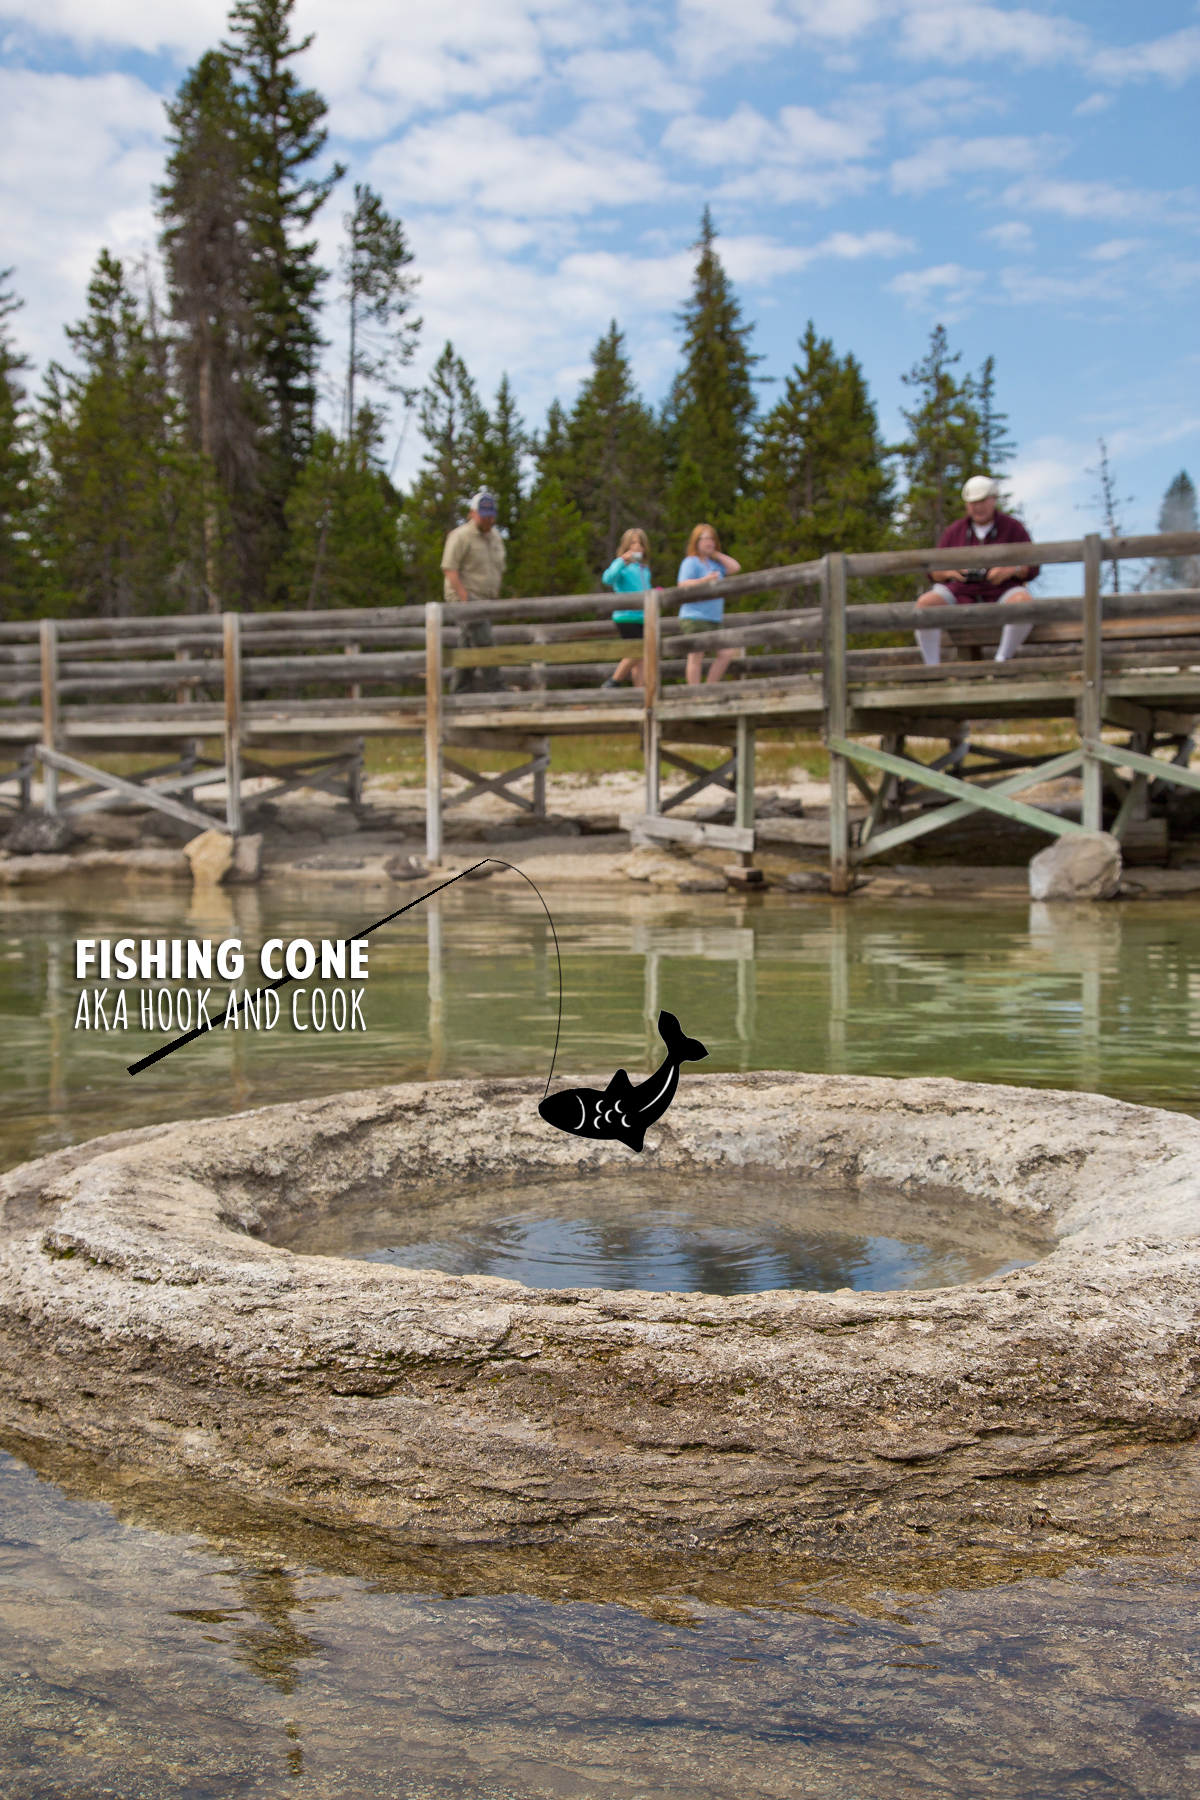 Fishing Cone in yellowstone lake - yellowstone national park